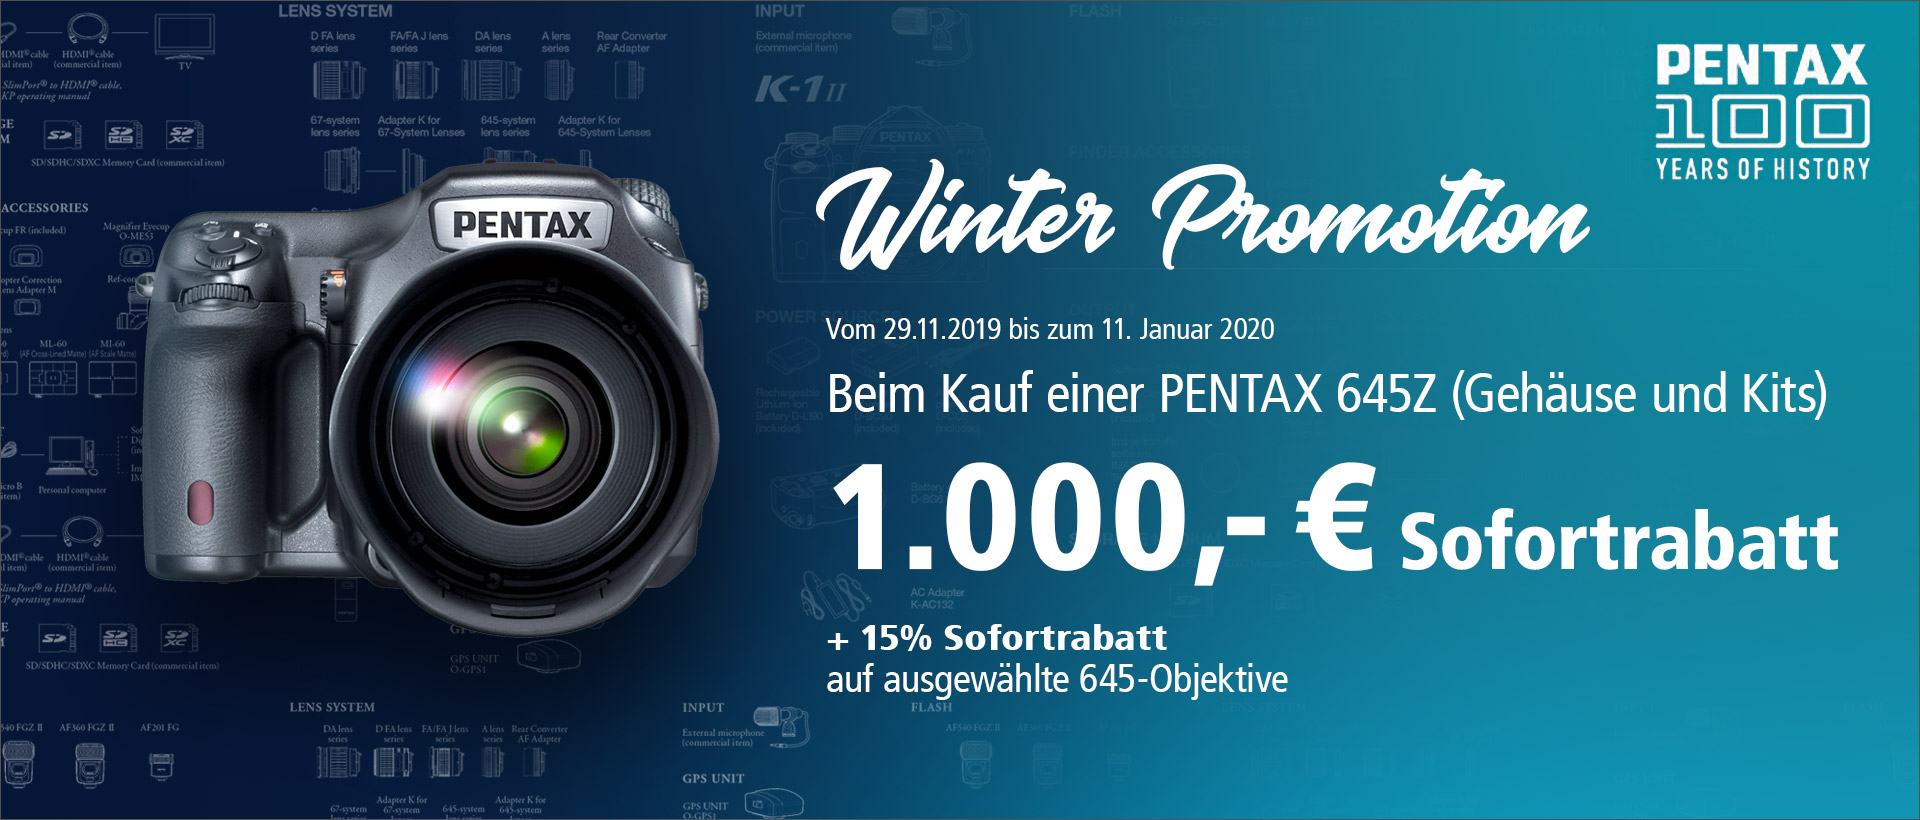 PENTAX 645Z Winter Promotion